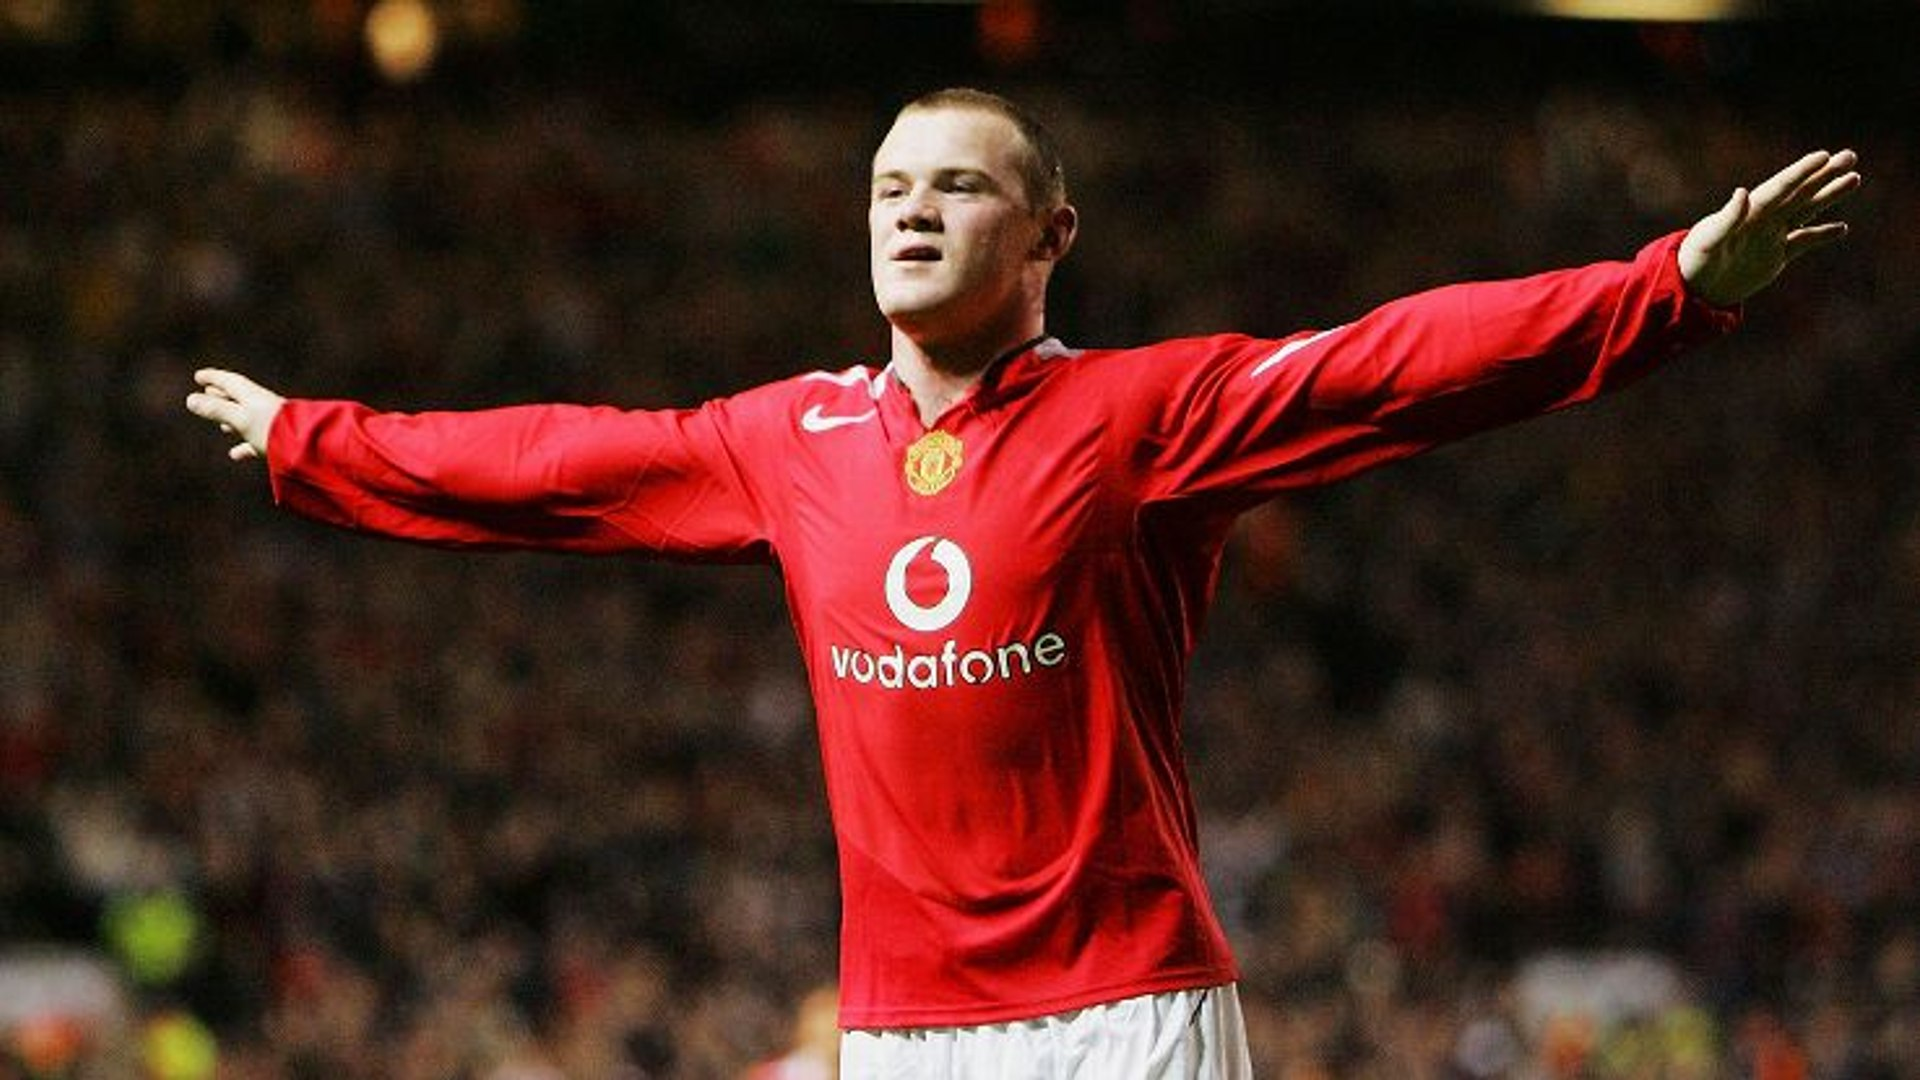 Wayne Rooney vs Fenerbahce S.K. (Manchester United Debut) Home (28/09/04)  HD - video dailymotion